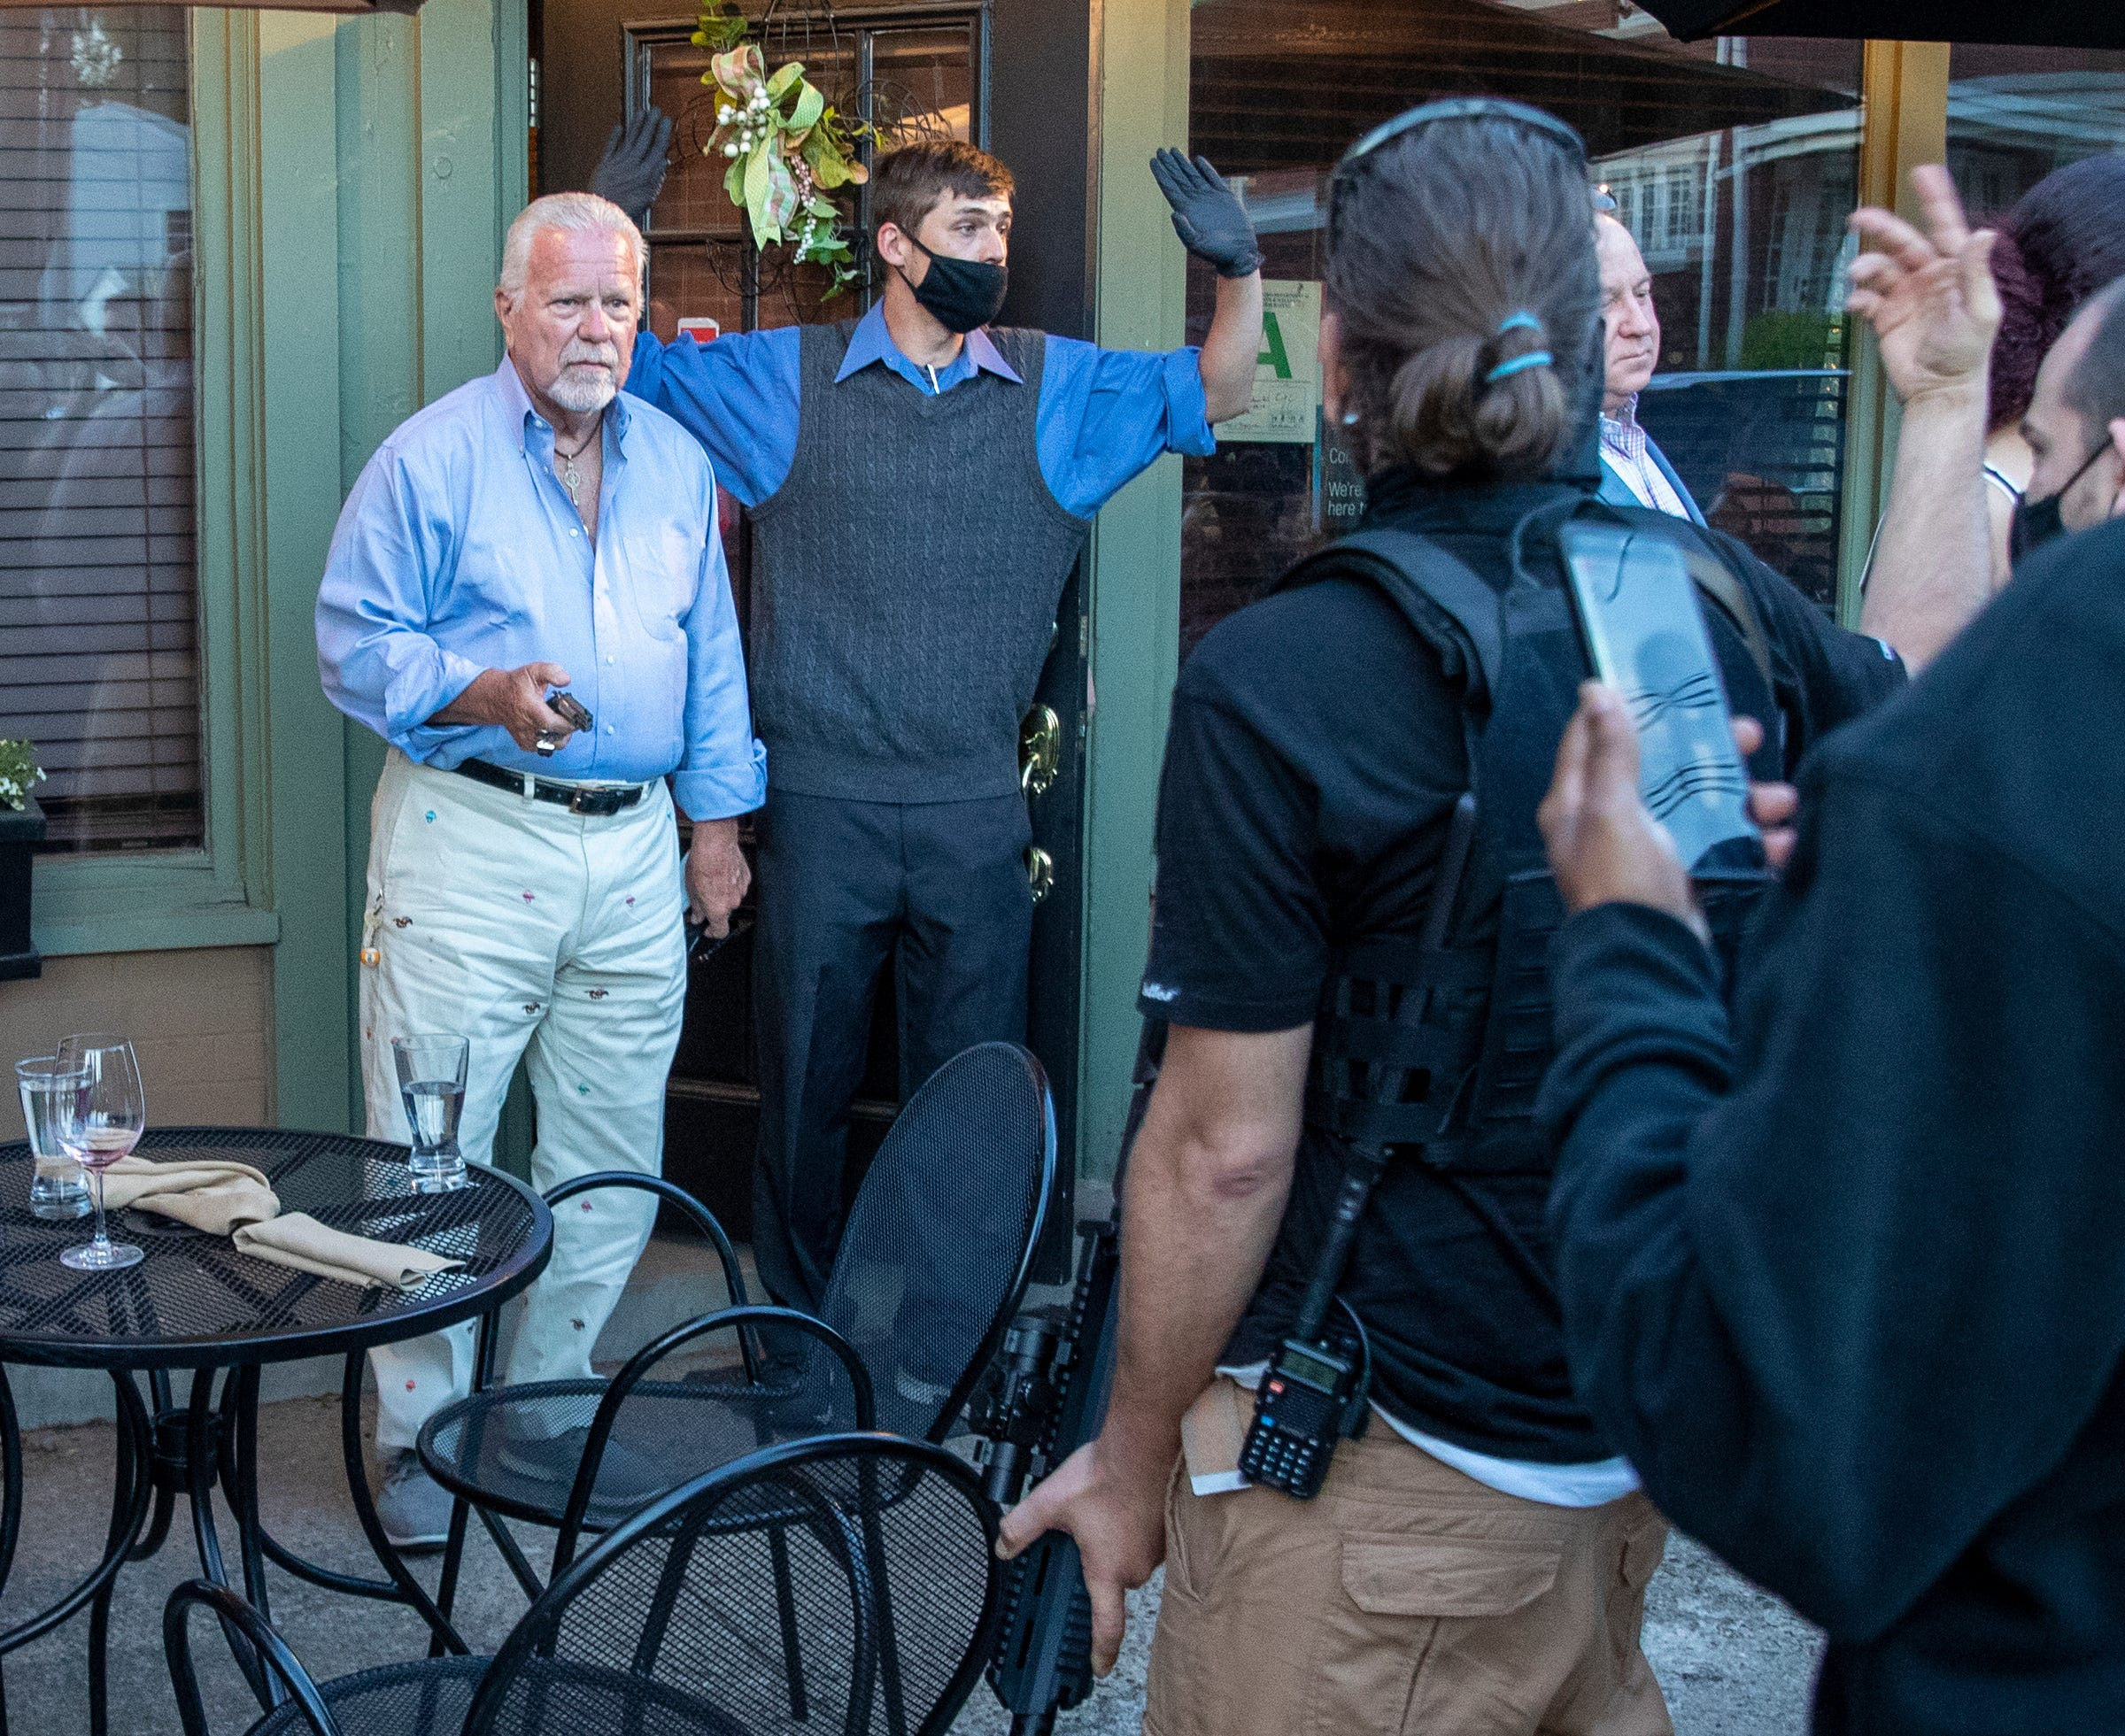 Tense moment between Louisville protesters and gun carrying restaurant patron